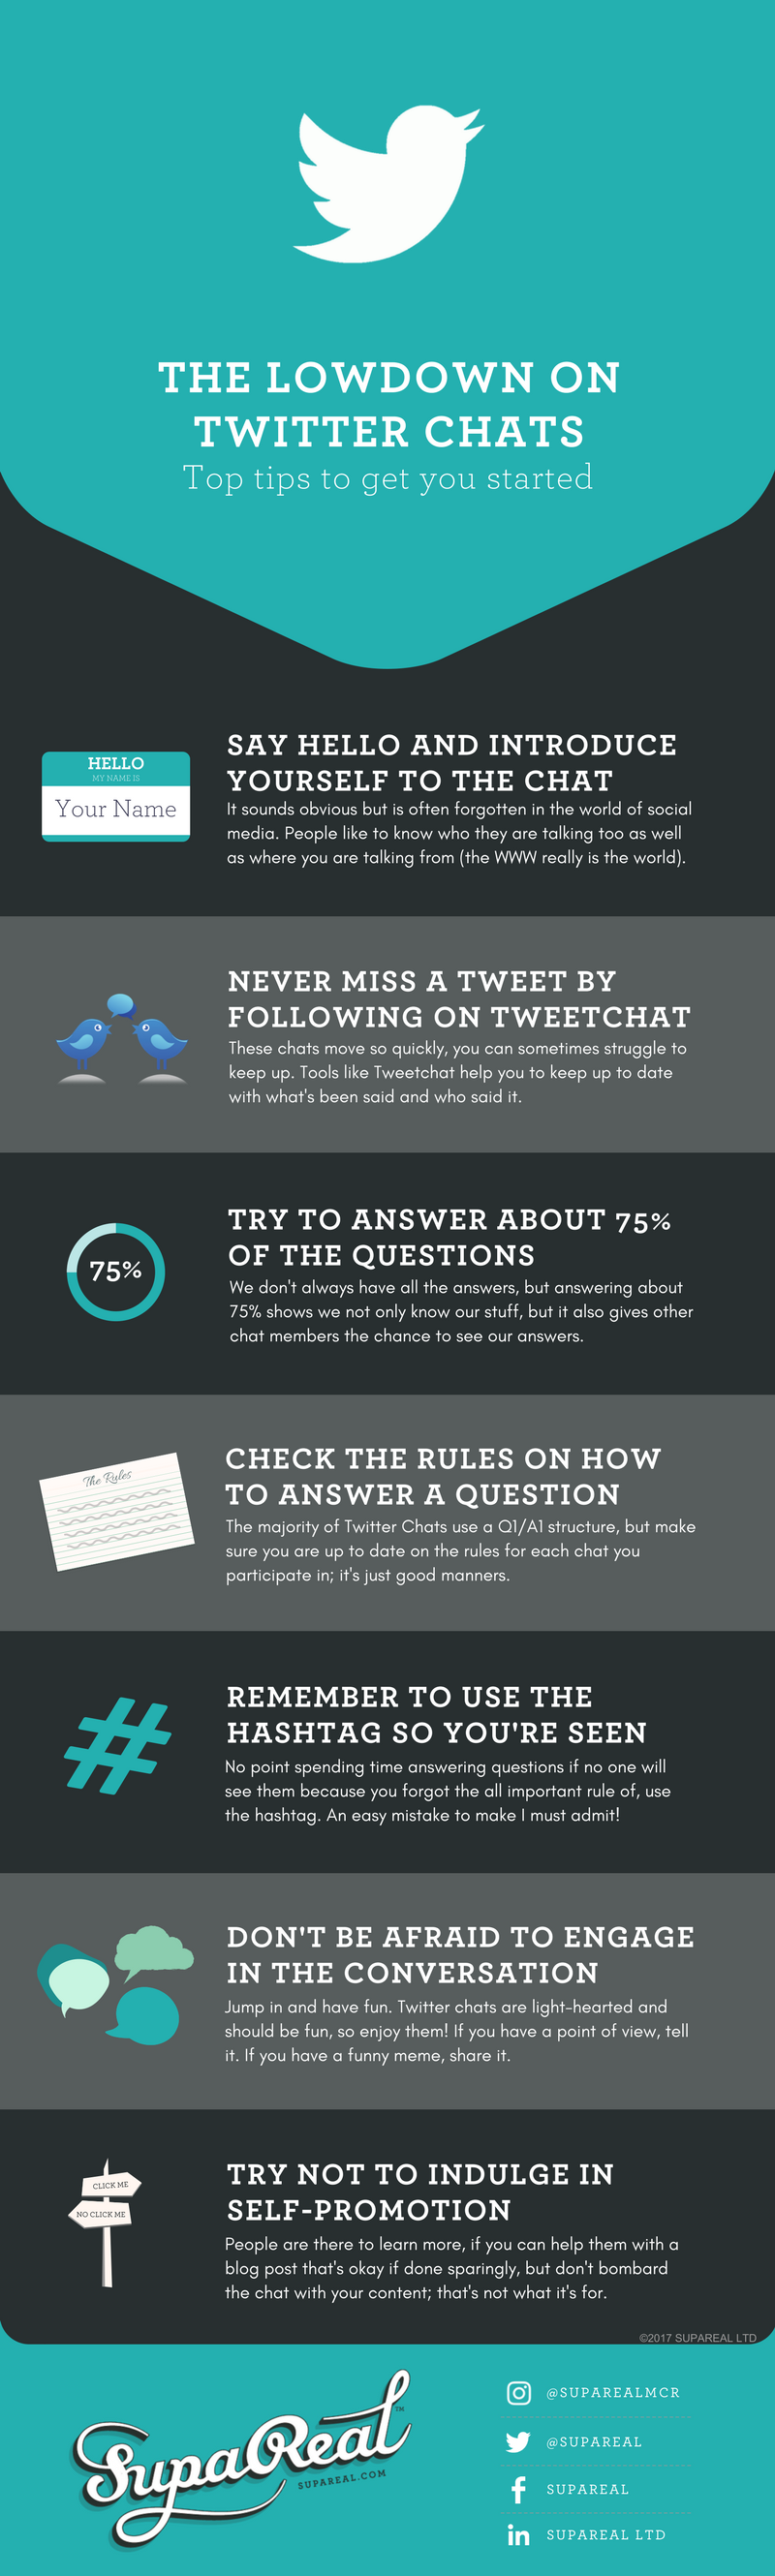 [Infographic] Twitter chats top tips